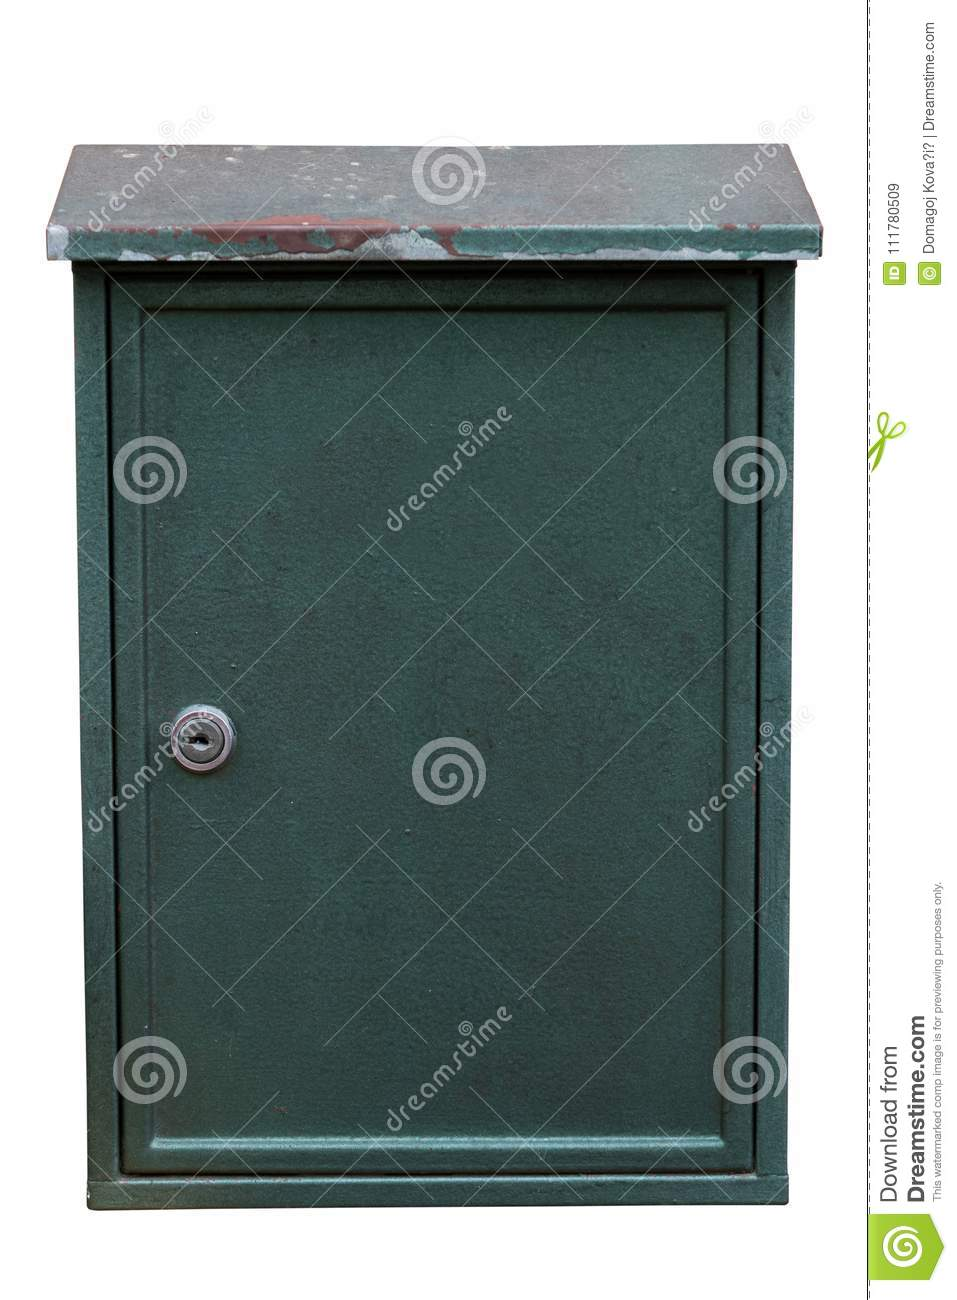 Used big dark green metal mailbox isolated on white background. Path saved